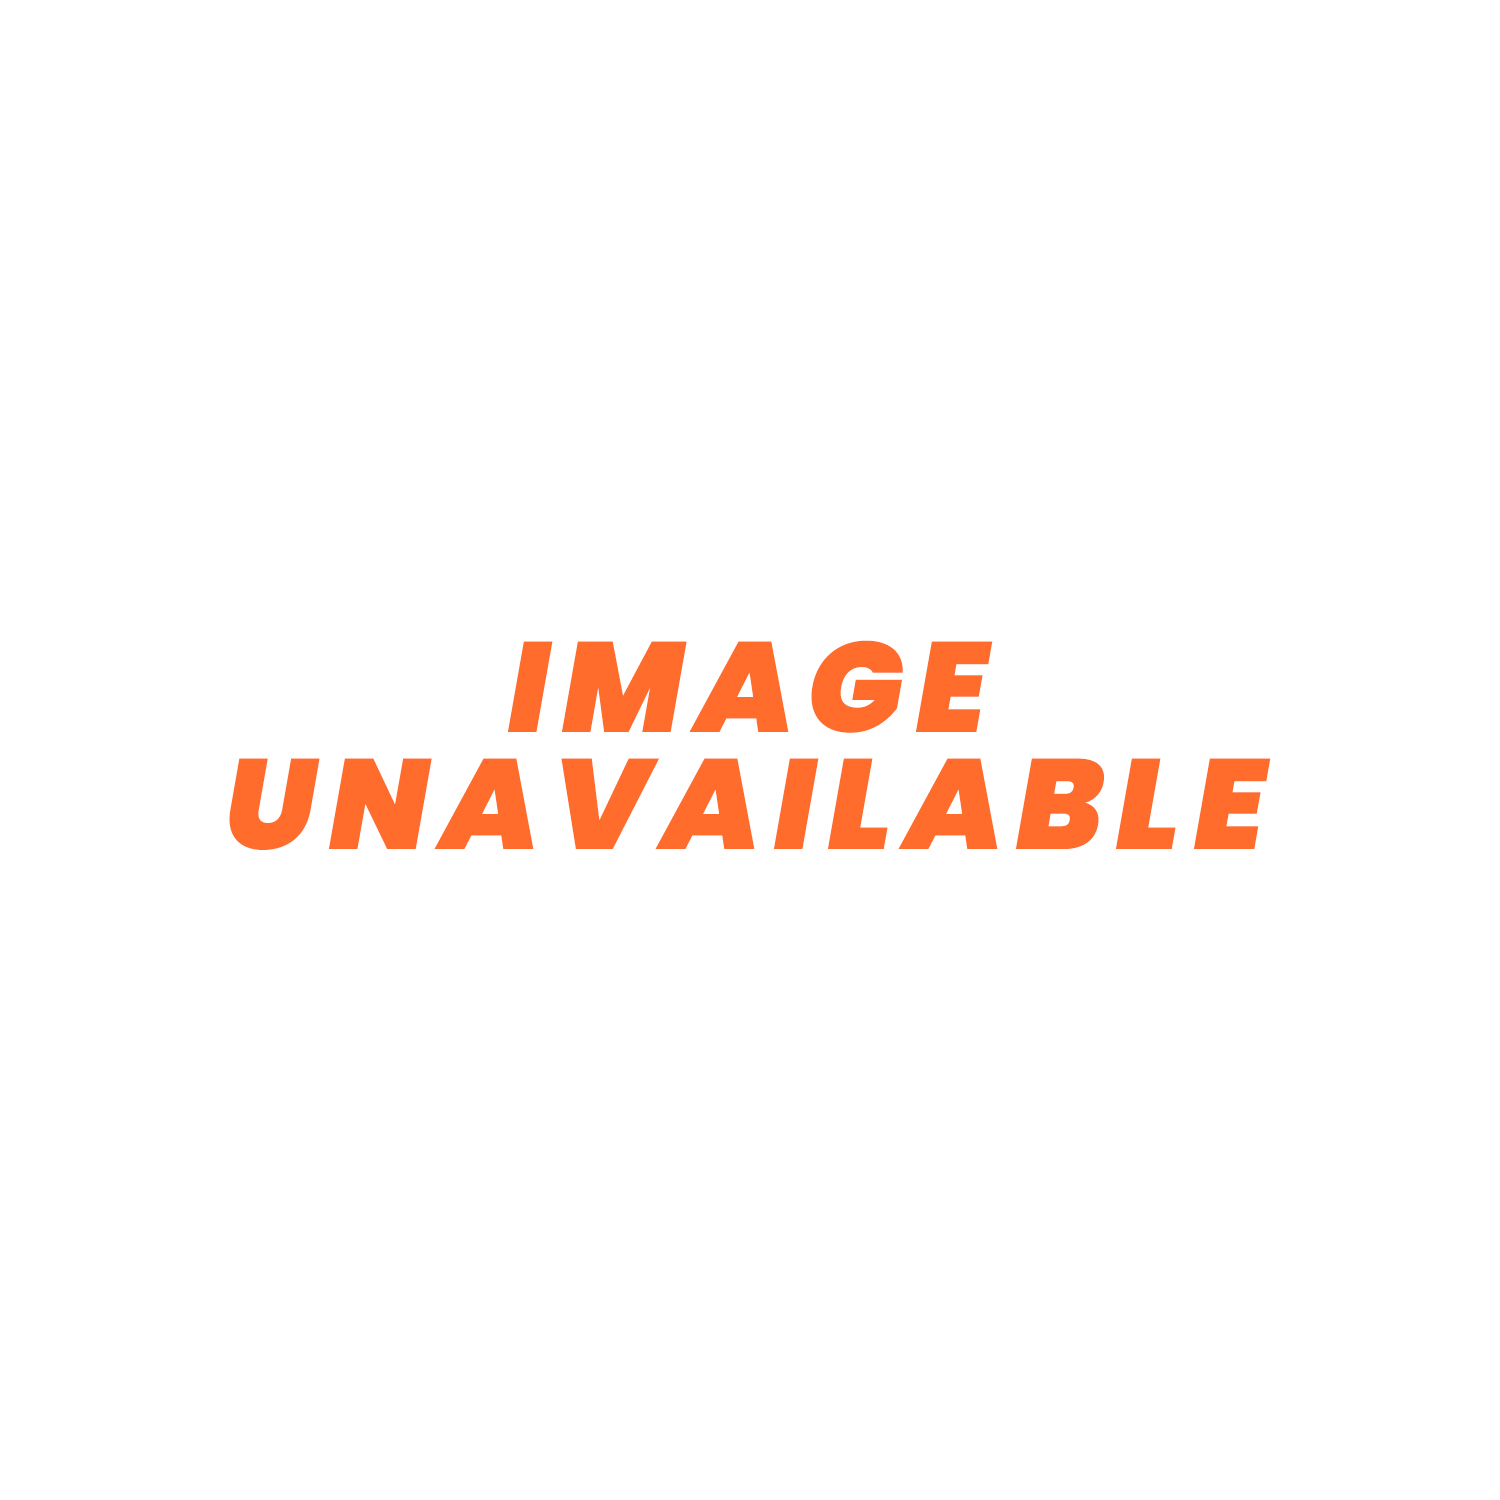 005-B46-02 SPAL Centrifugal Blower 366cfm Front